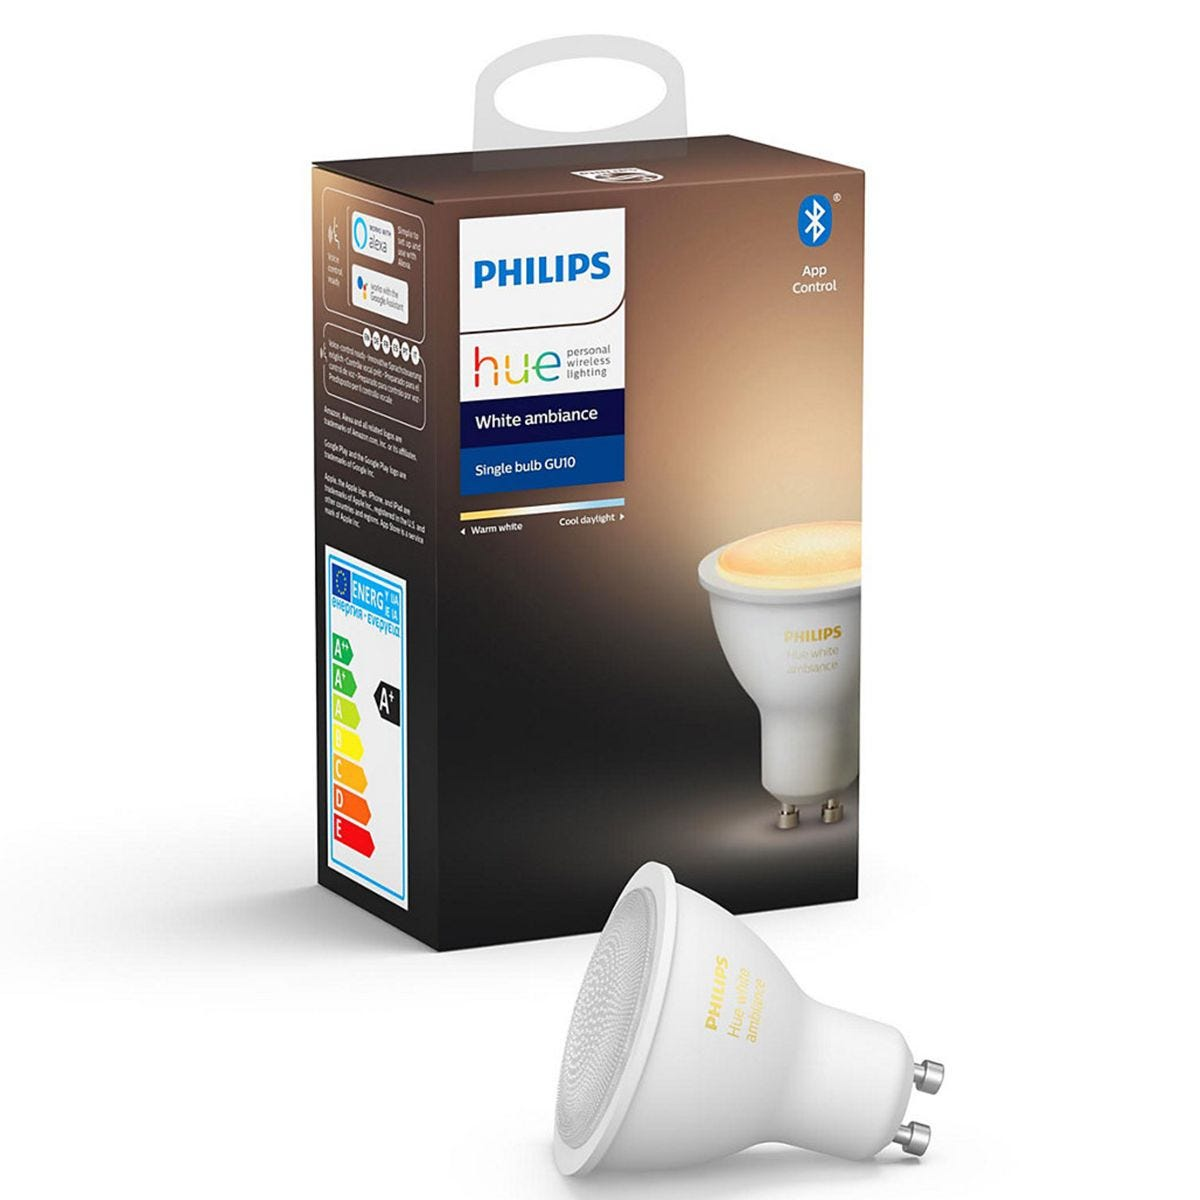 Philips Hue Smart Wi-Fi Dimmable White Ambiance GU10 25W Bluetooth Lightbulb